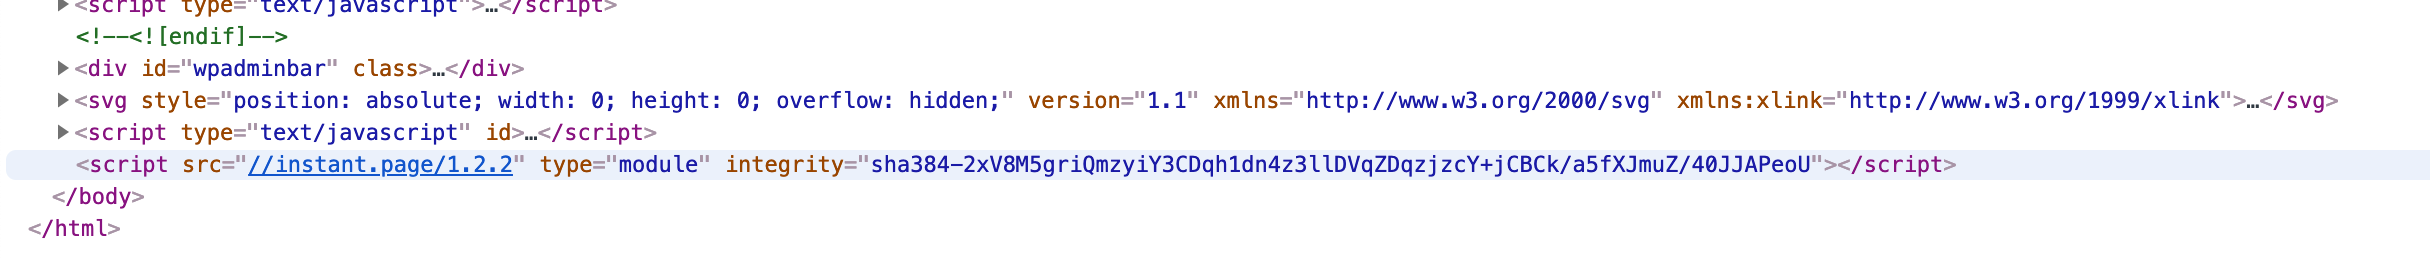 rendered HTML